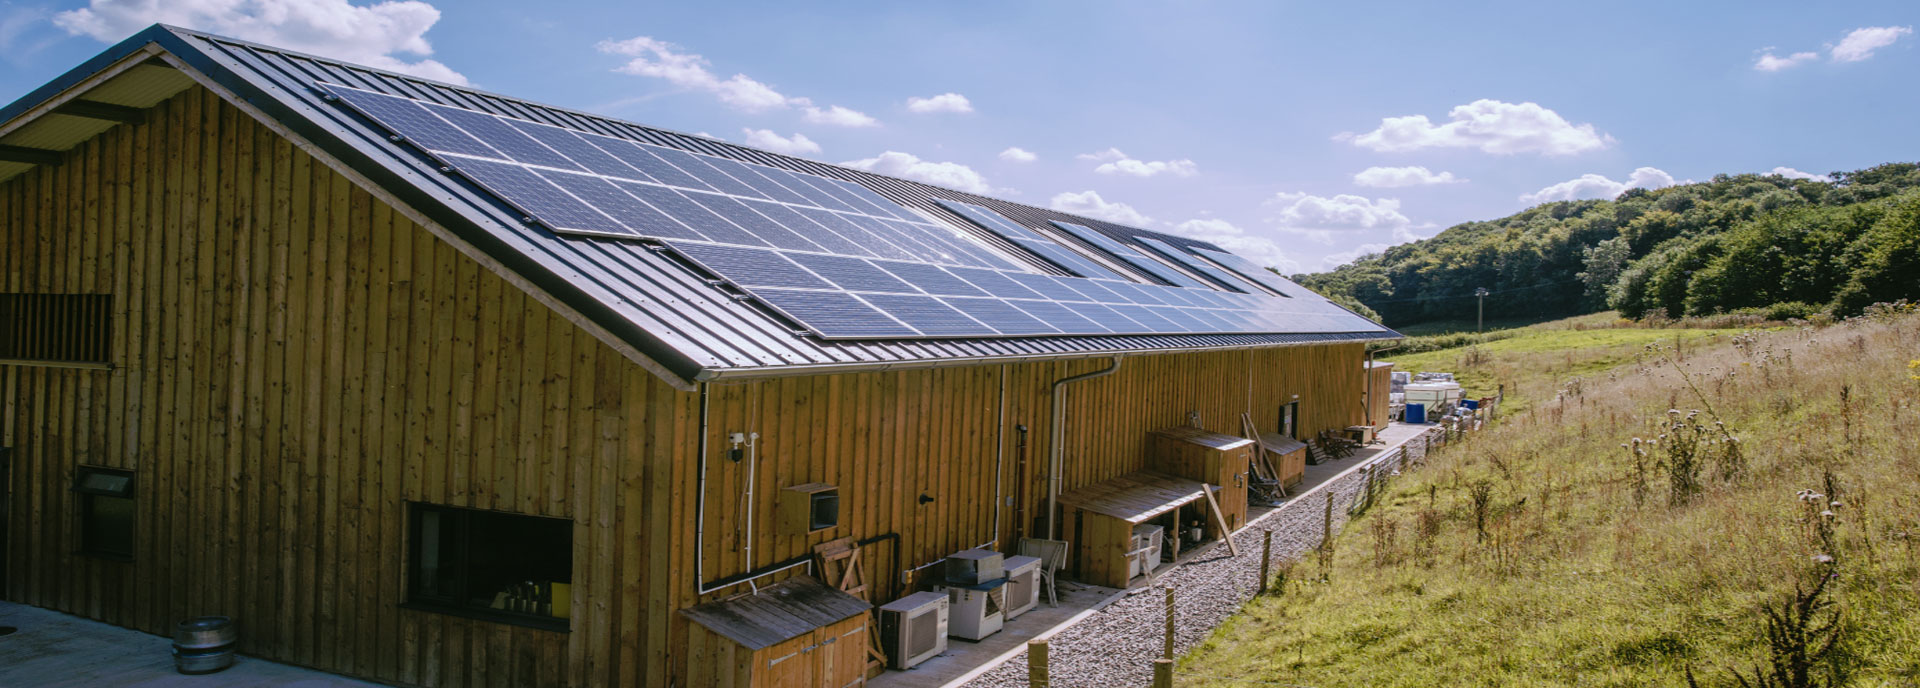 Solar For Farmers and Landowners